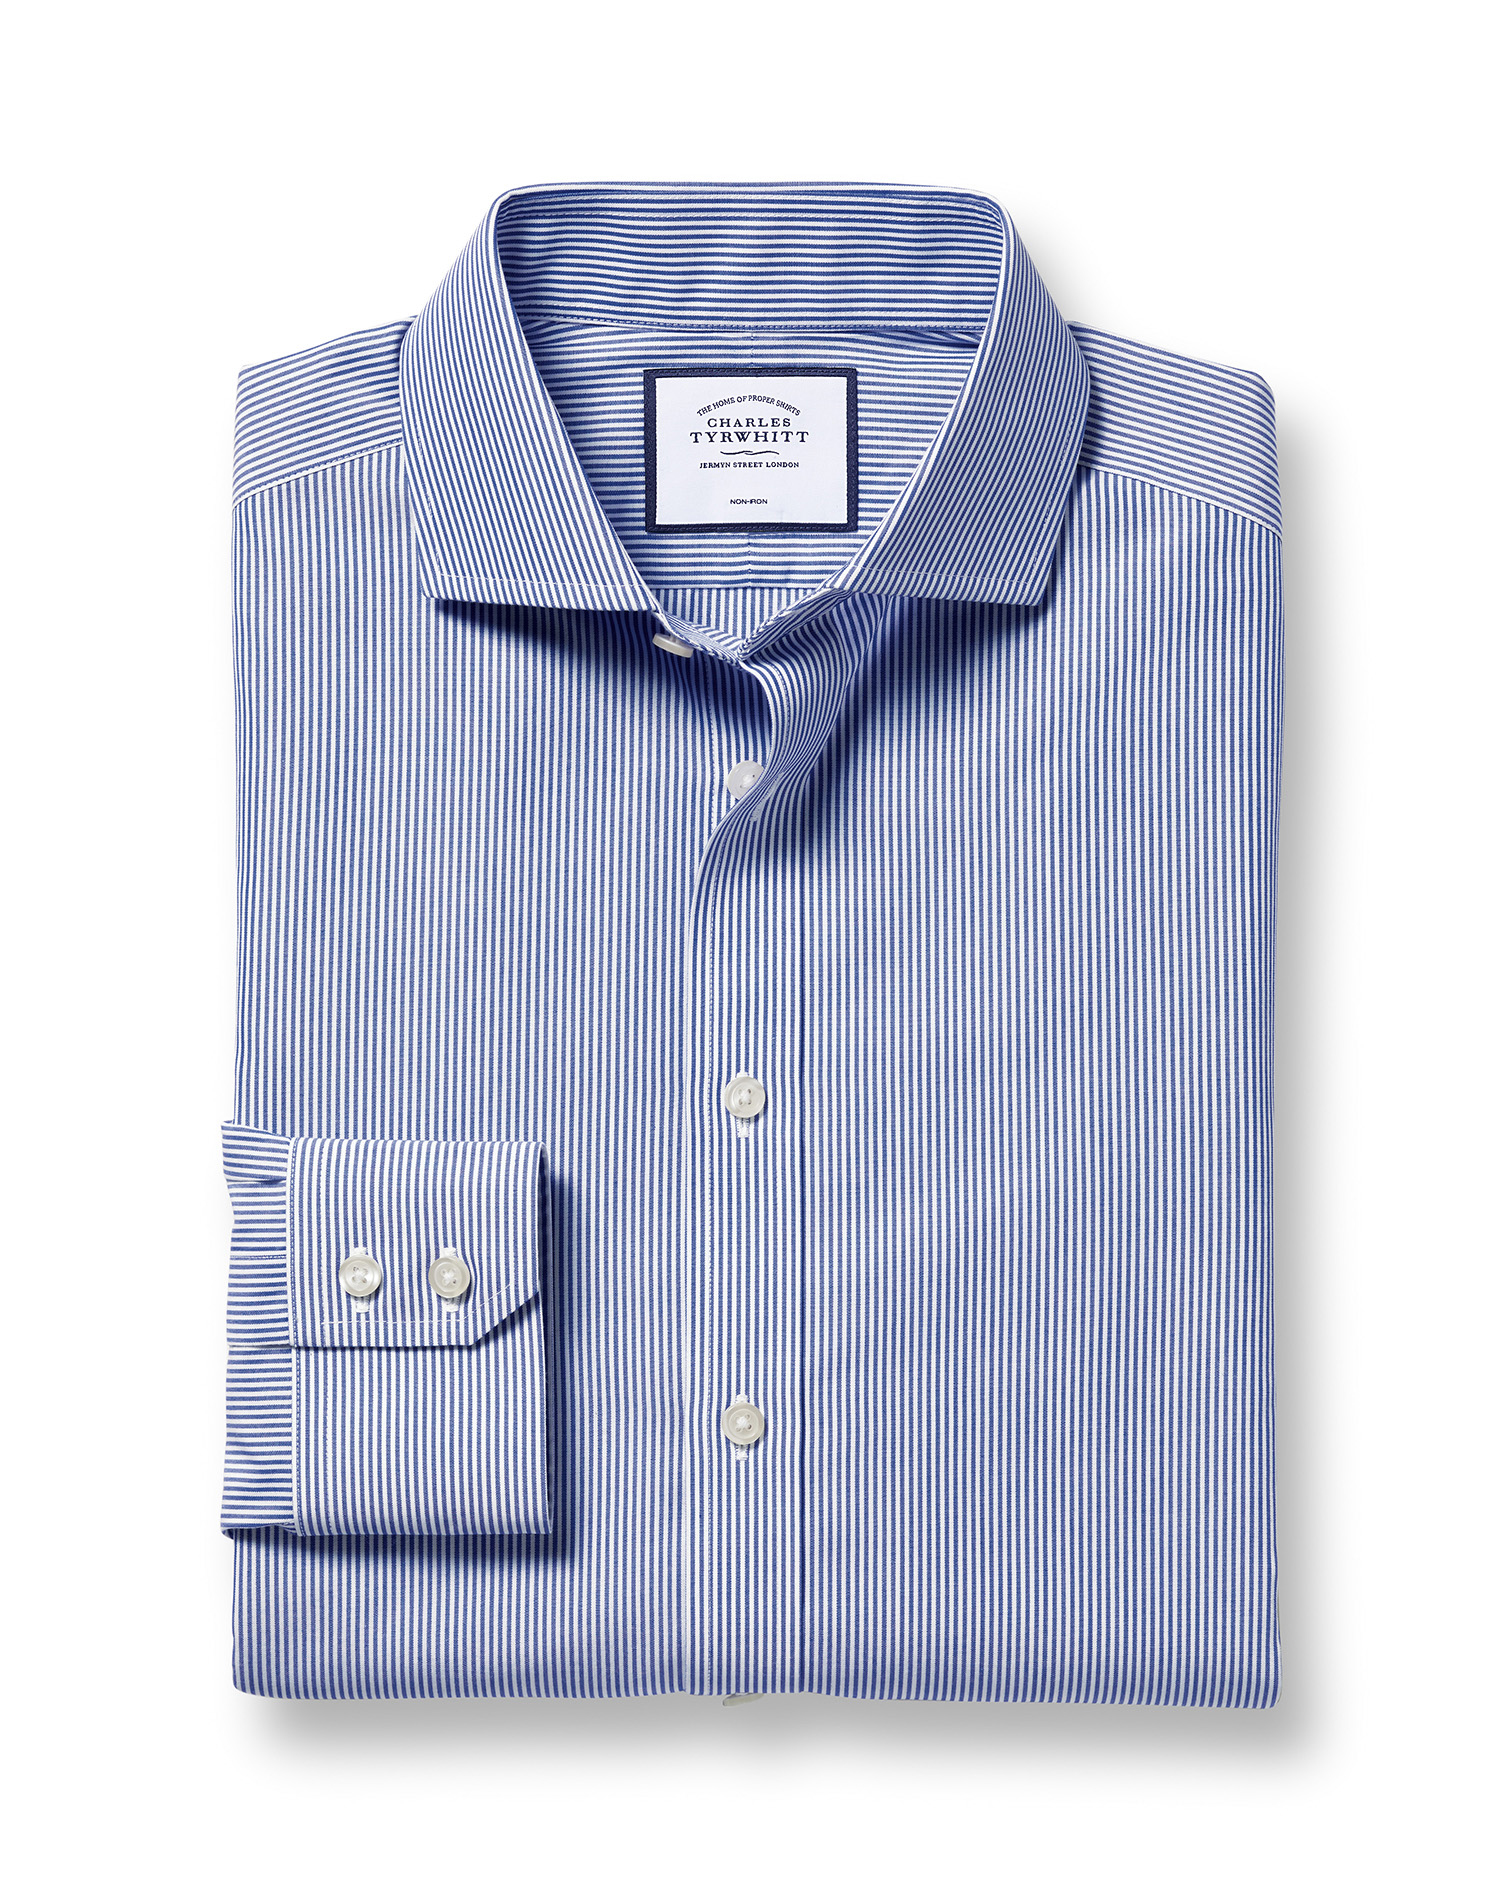 Slim Fit Non-Iron Cutaway Navy Bengal Stripe Cotton Formal Shirt Double Cuff Size 16.5/33 by Charles